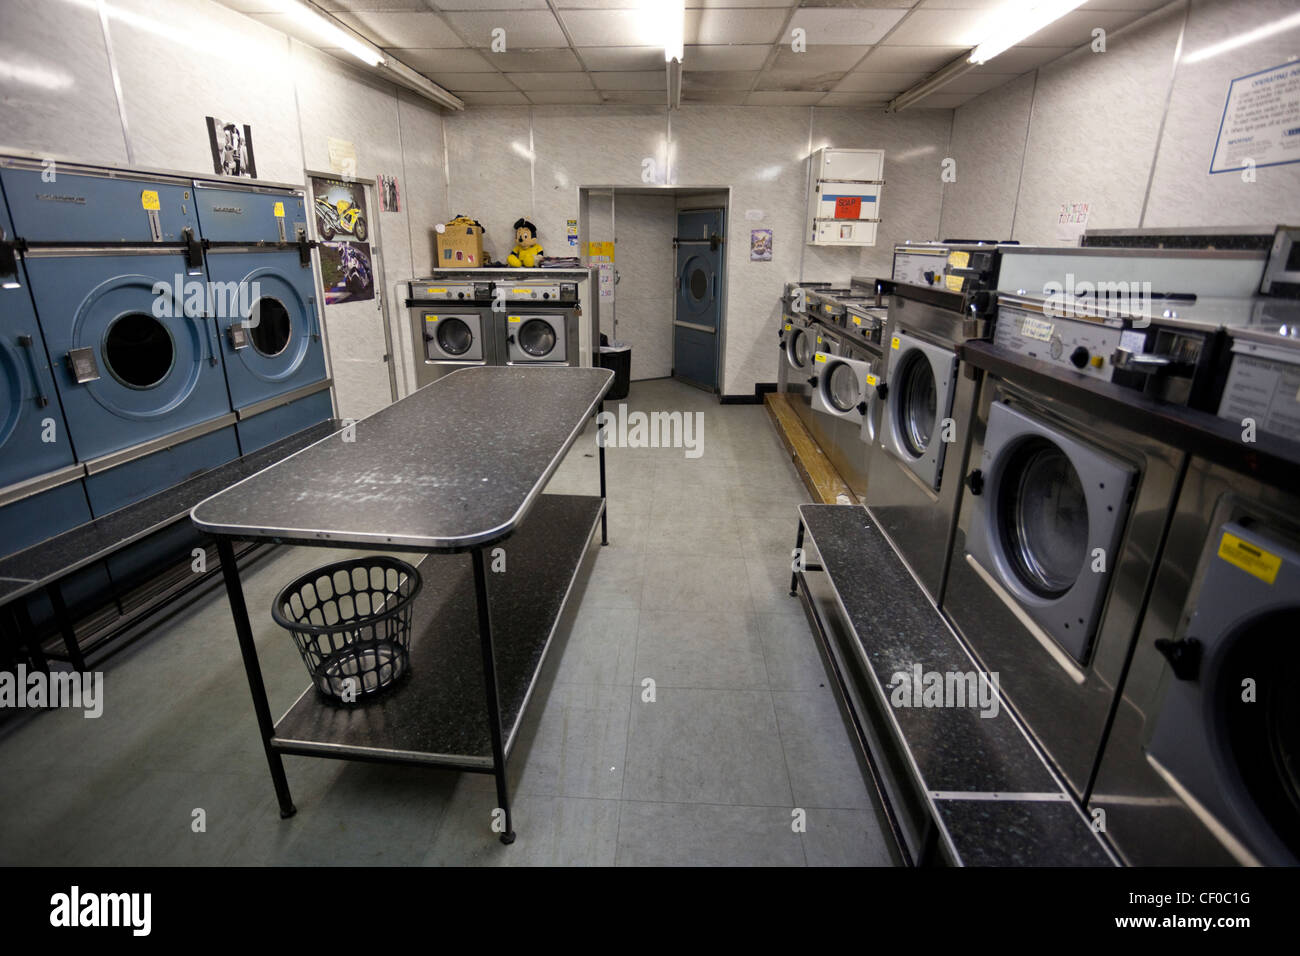 Washing machines and tumbler dryers in an empty laundrette, London, England, UK - Stock Image